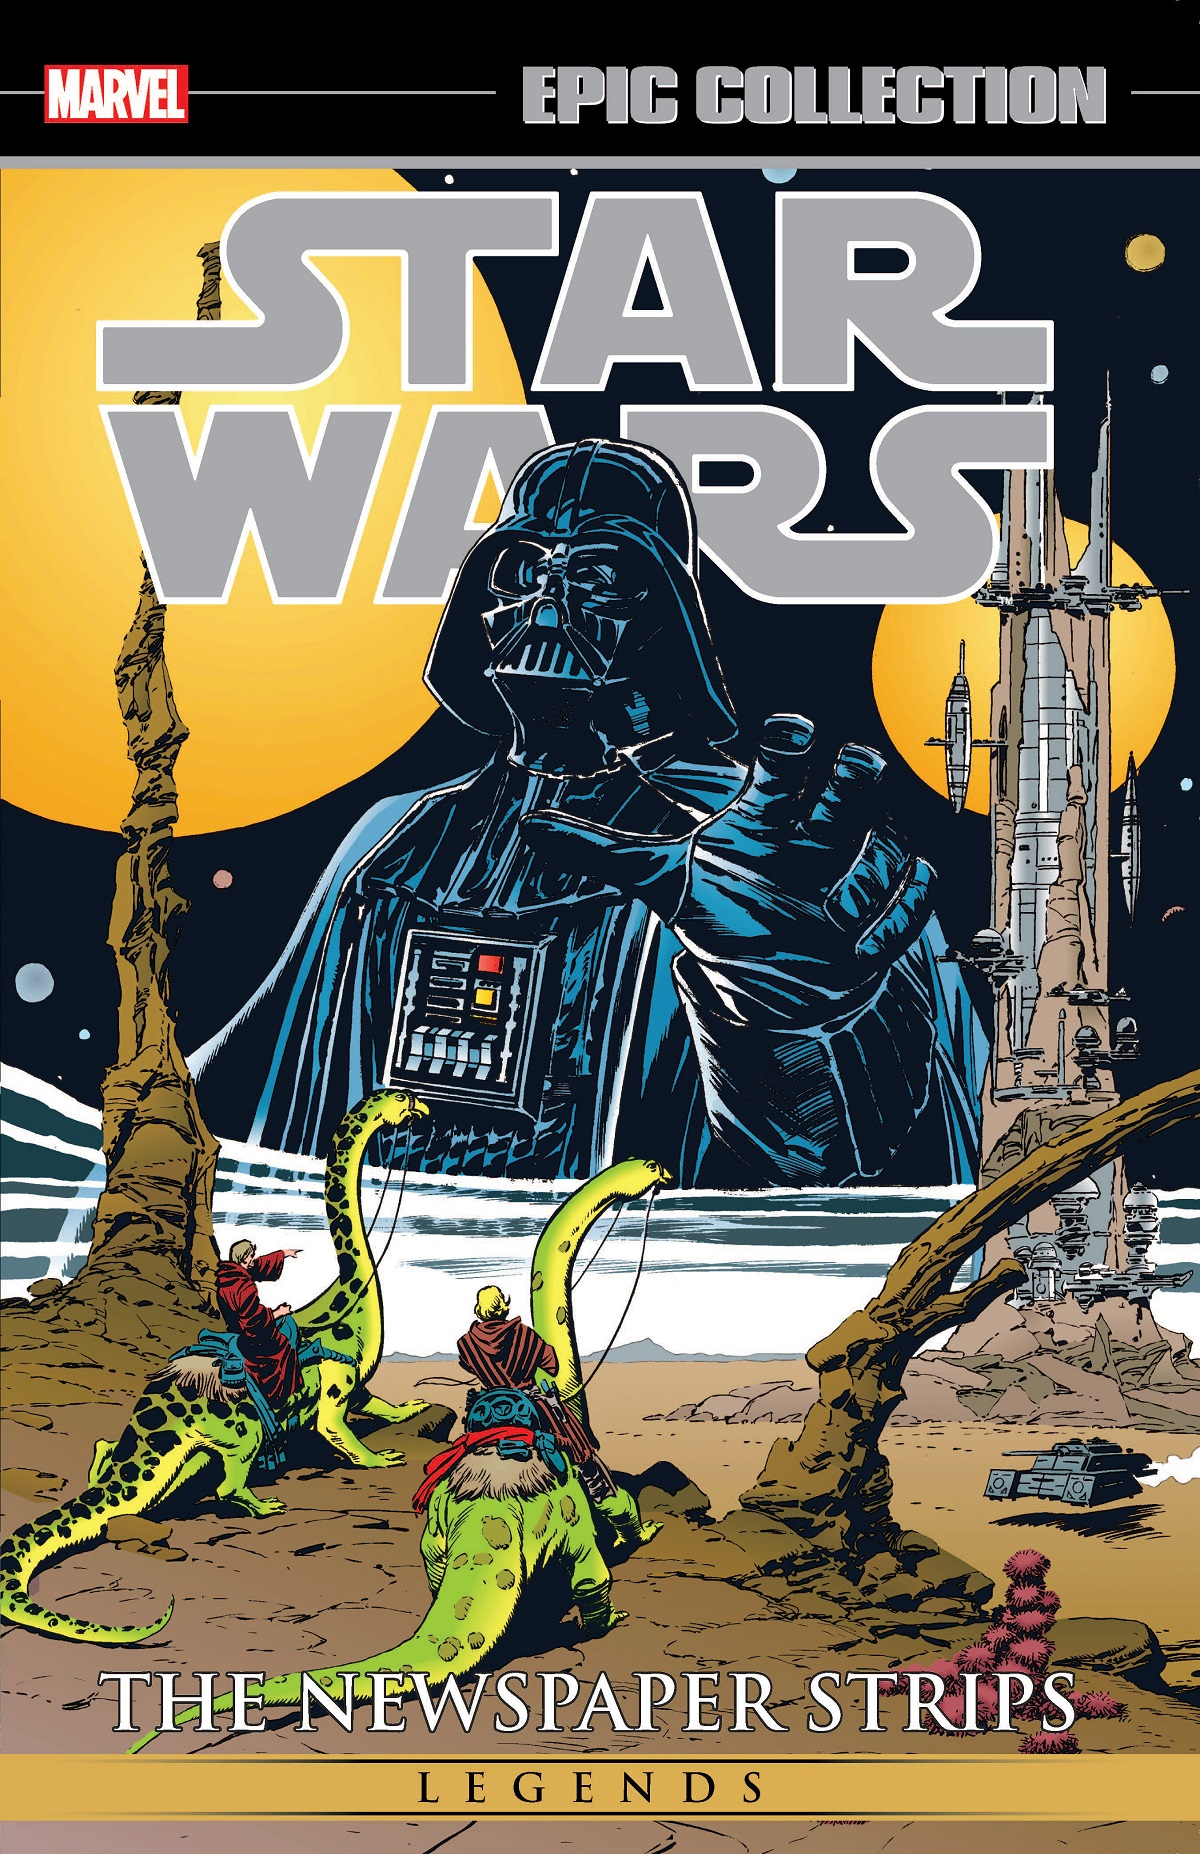 Star Wars Legends Epic Collection: The Newspaper Strips Vol. 2 (Trade Paperback)